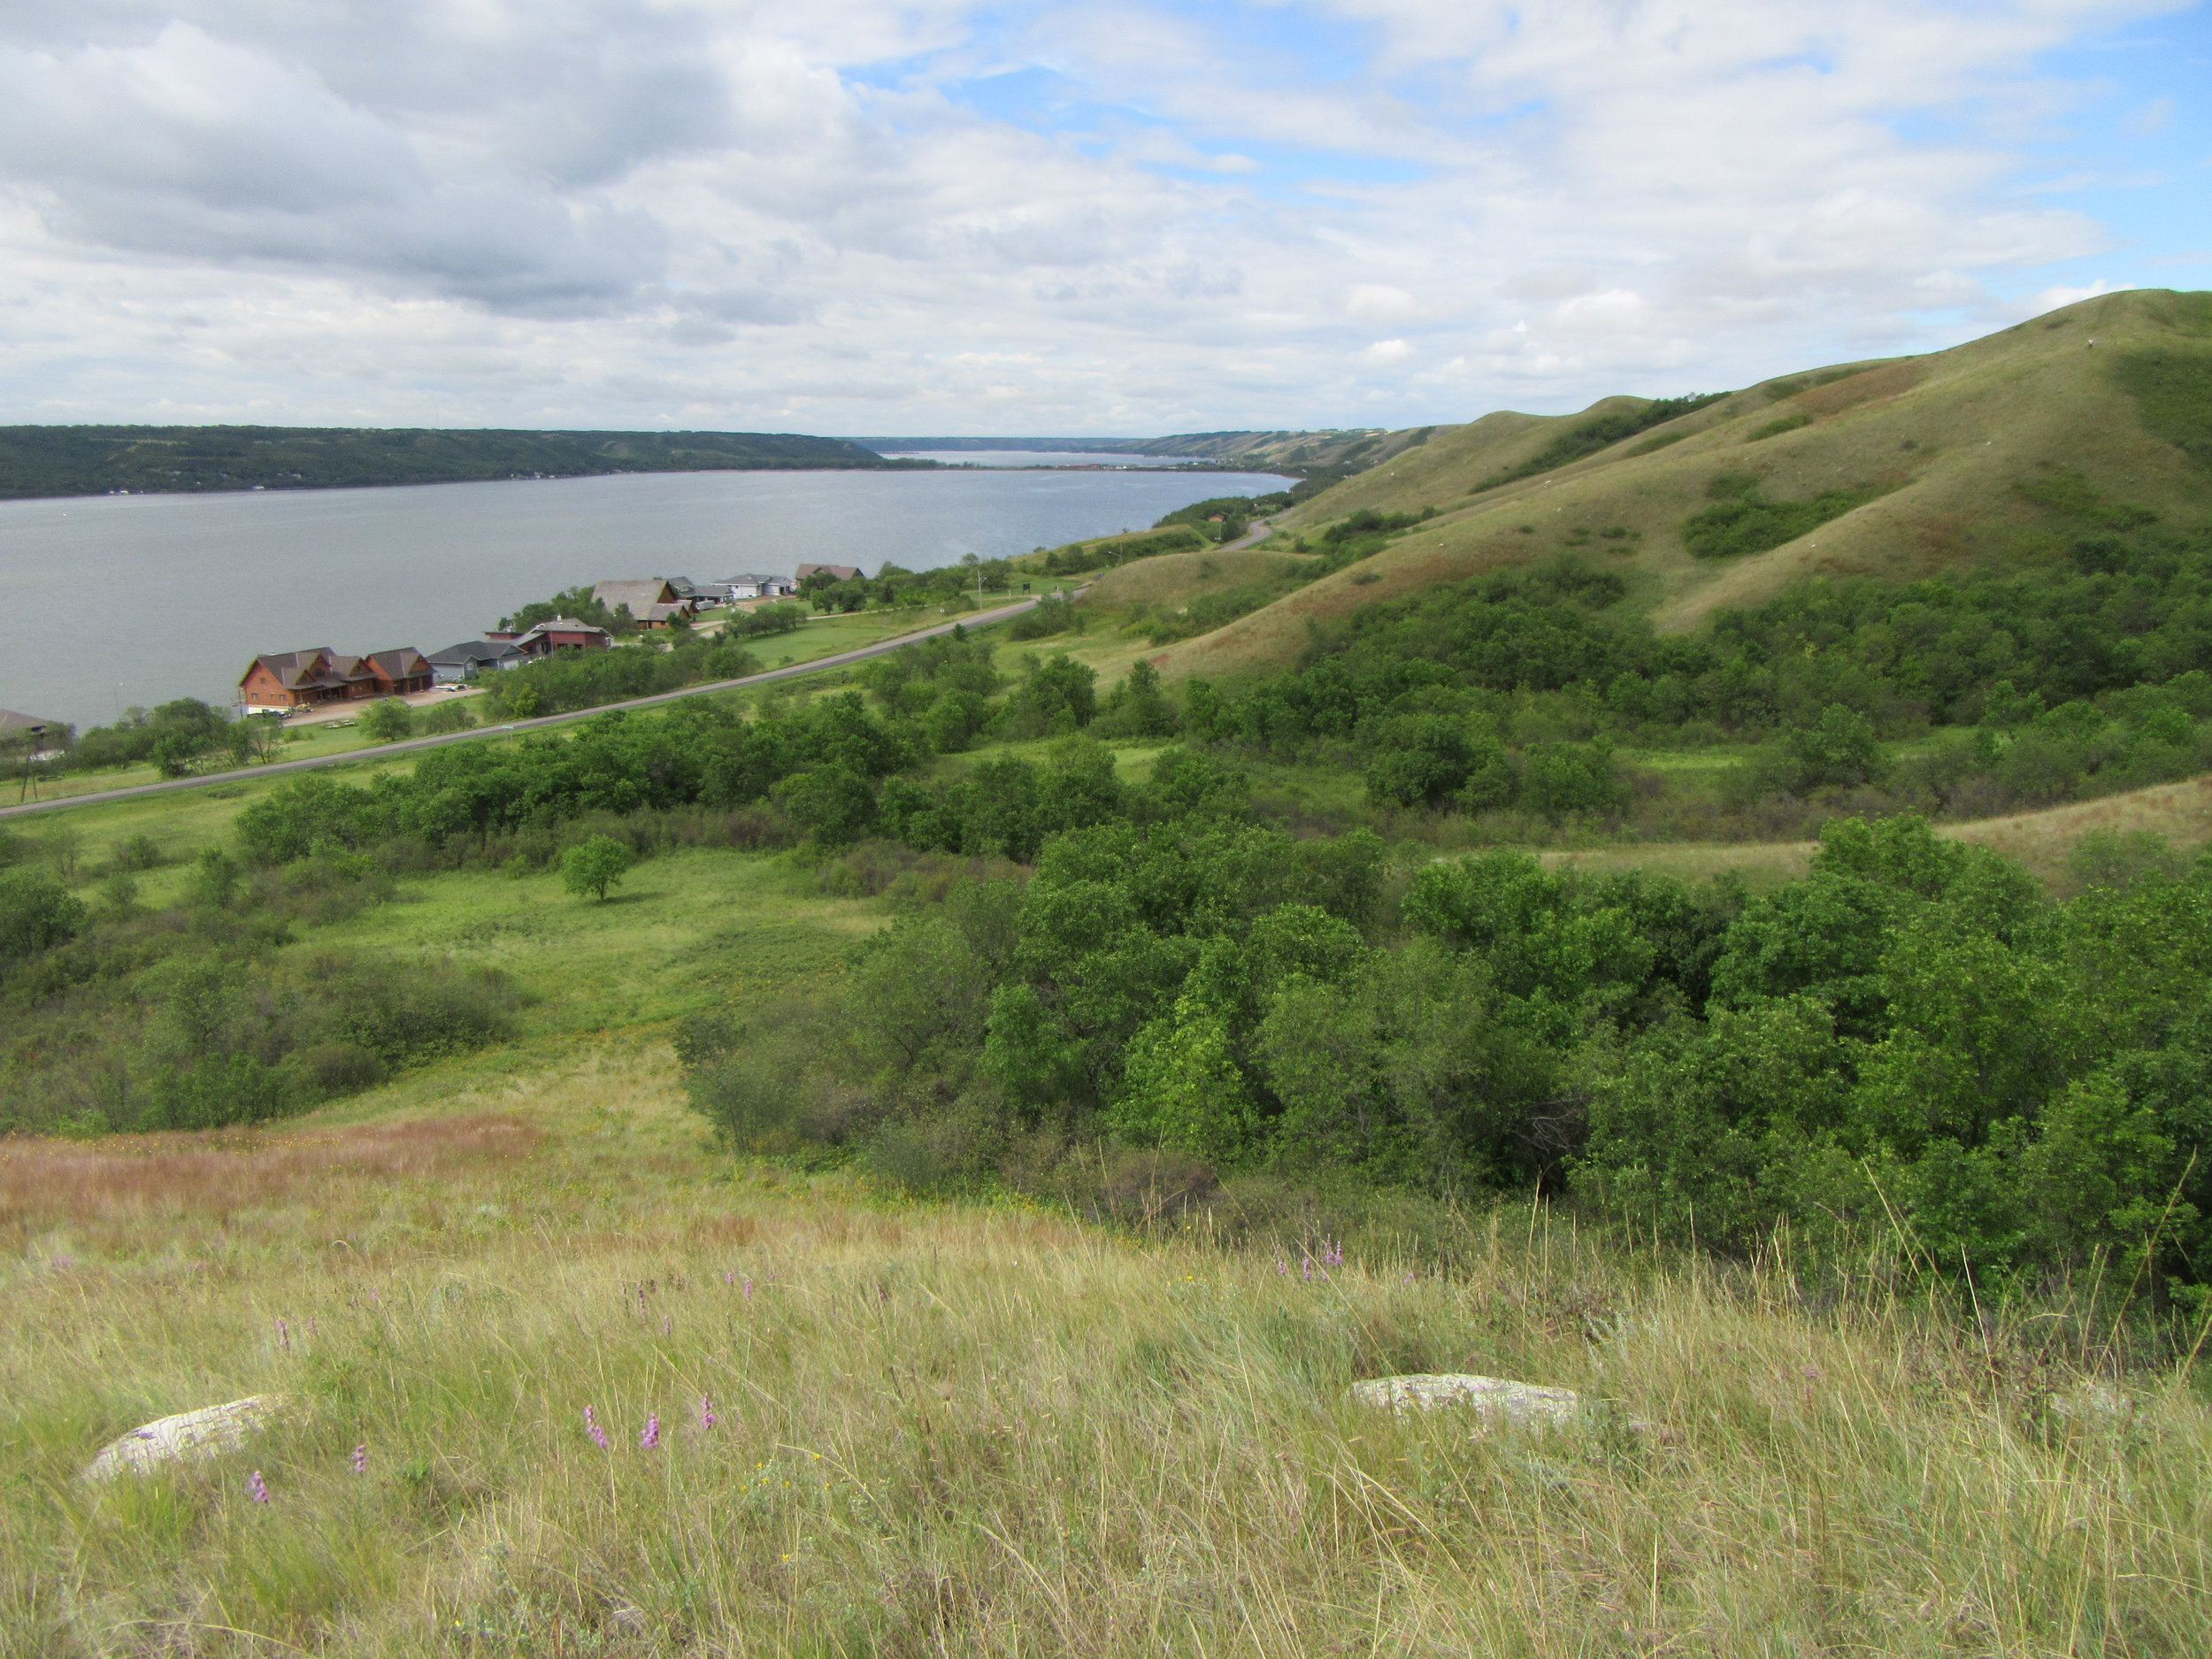 Proposed campground development in the Qu'Appelle valley.